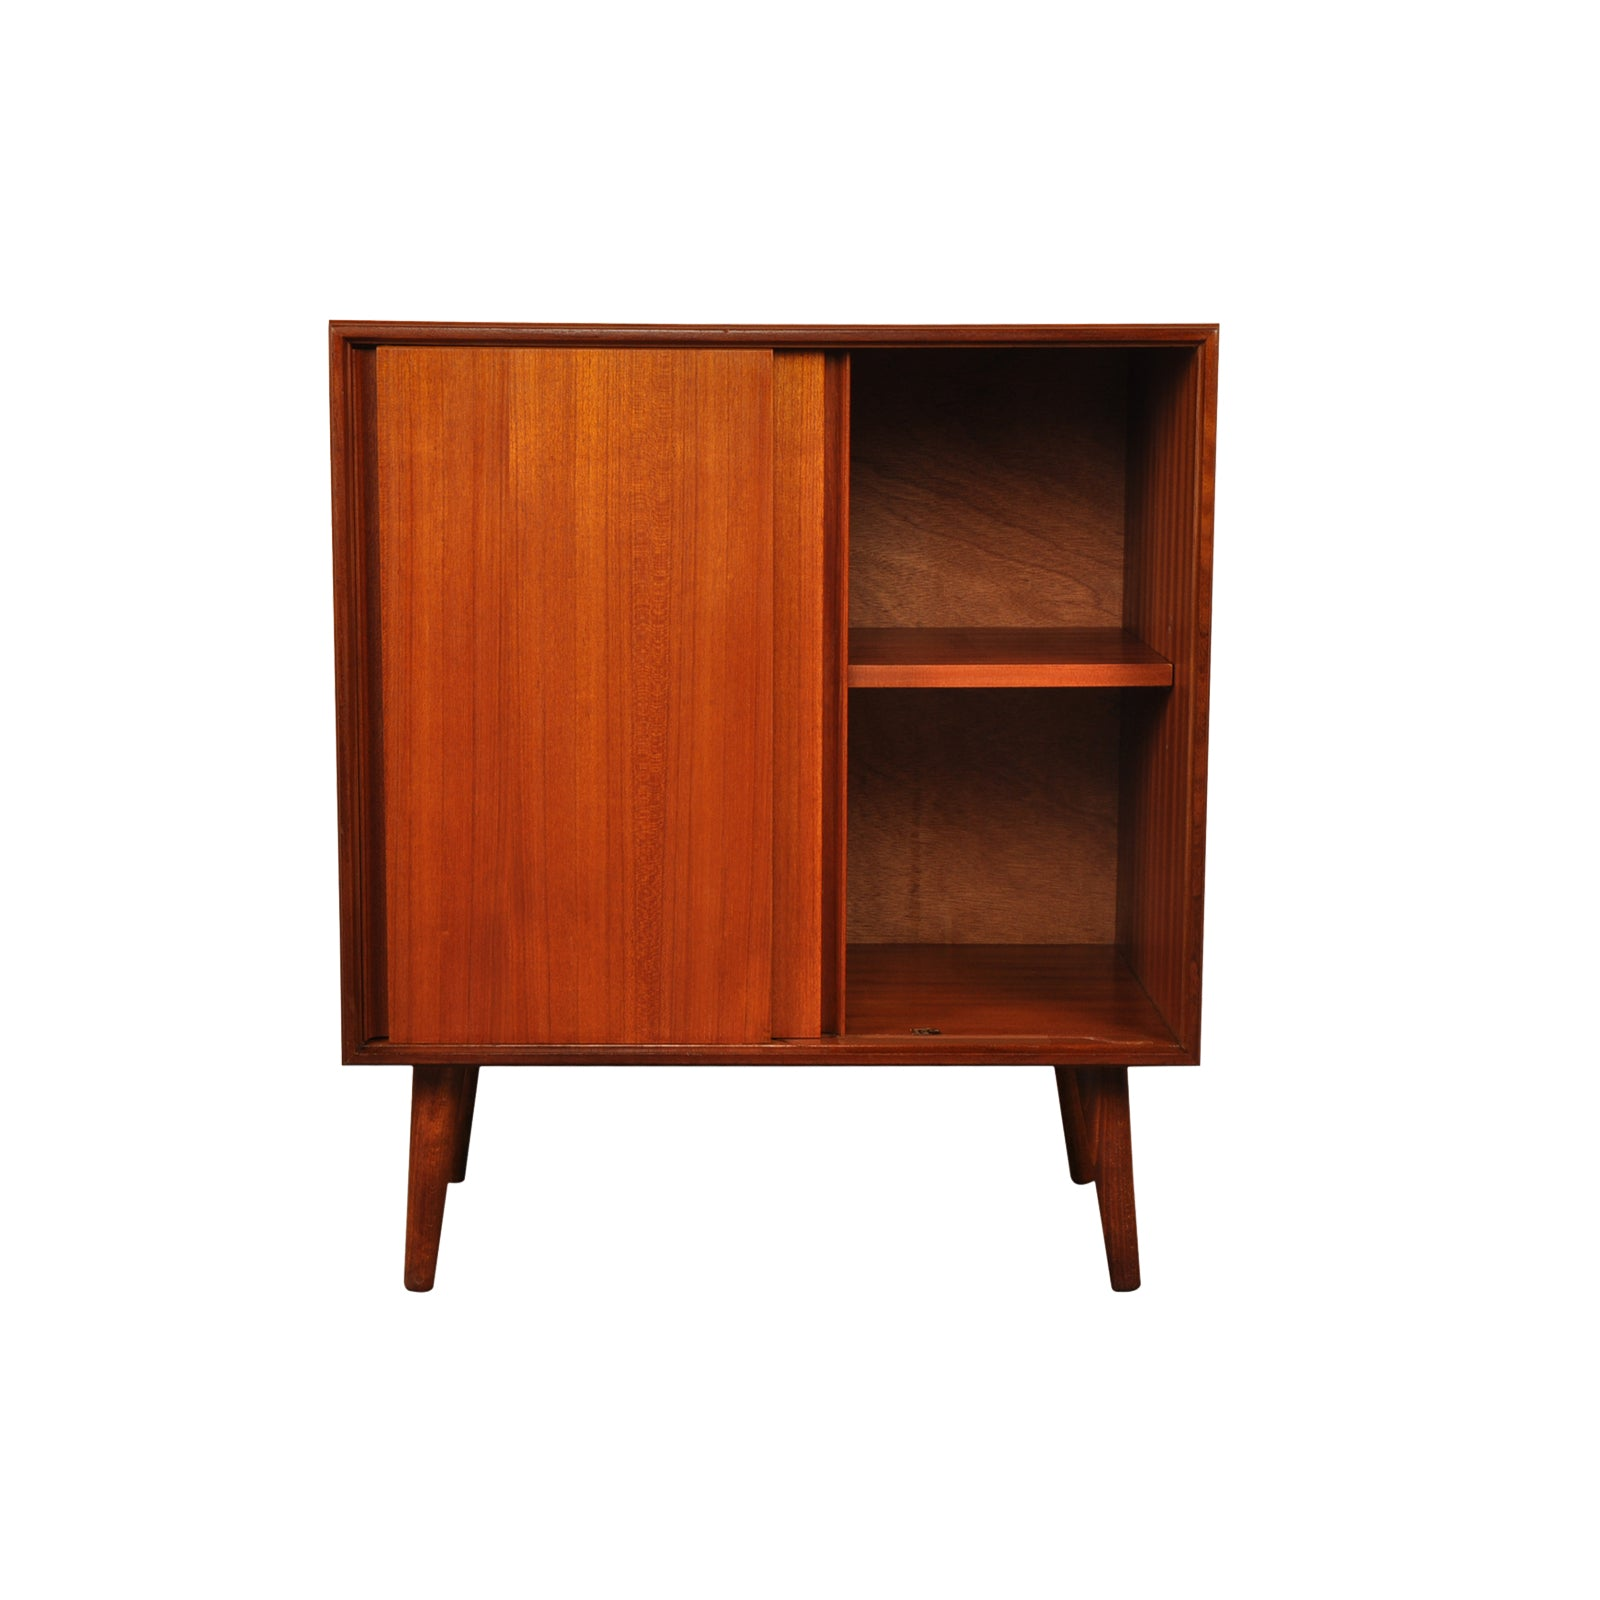 G-Plan 1960s Form Five Tall Cabinet on tapered legs